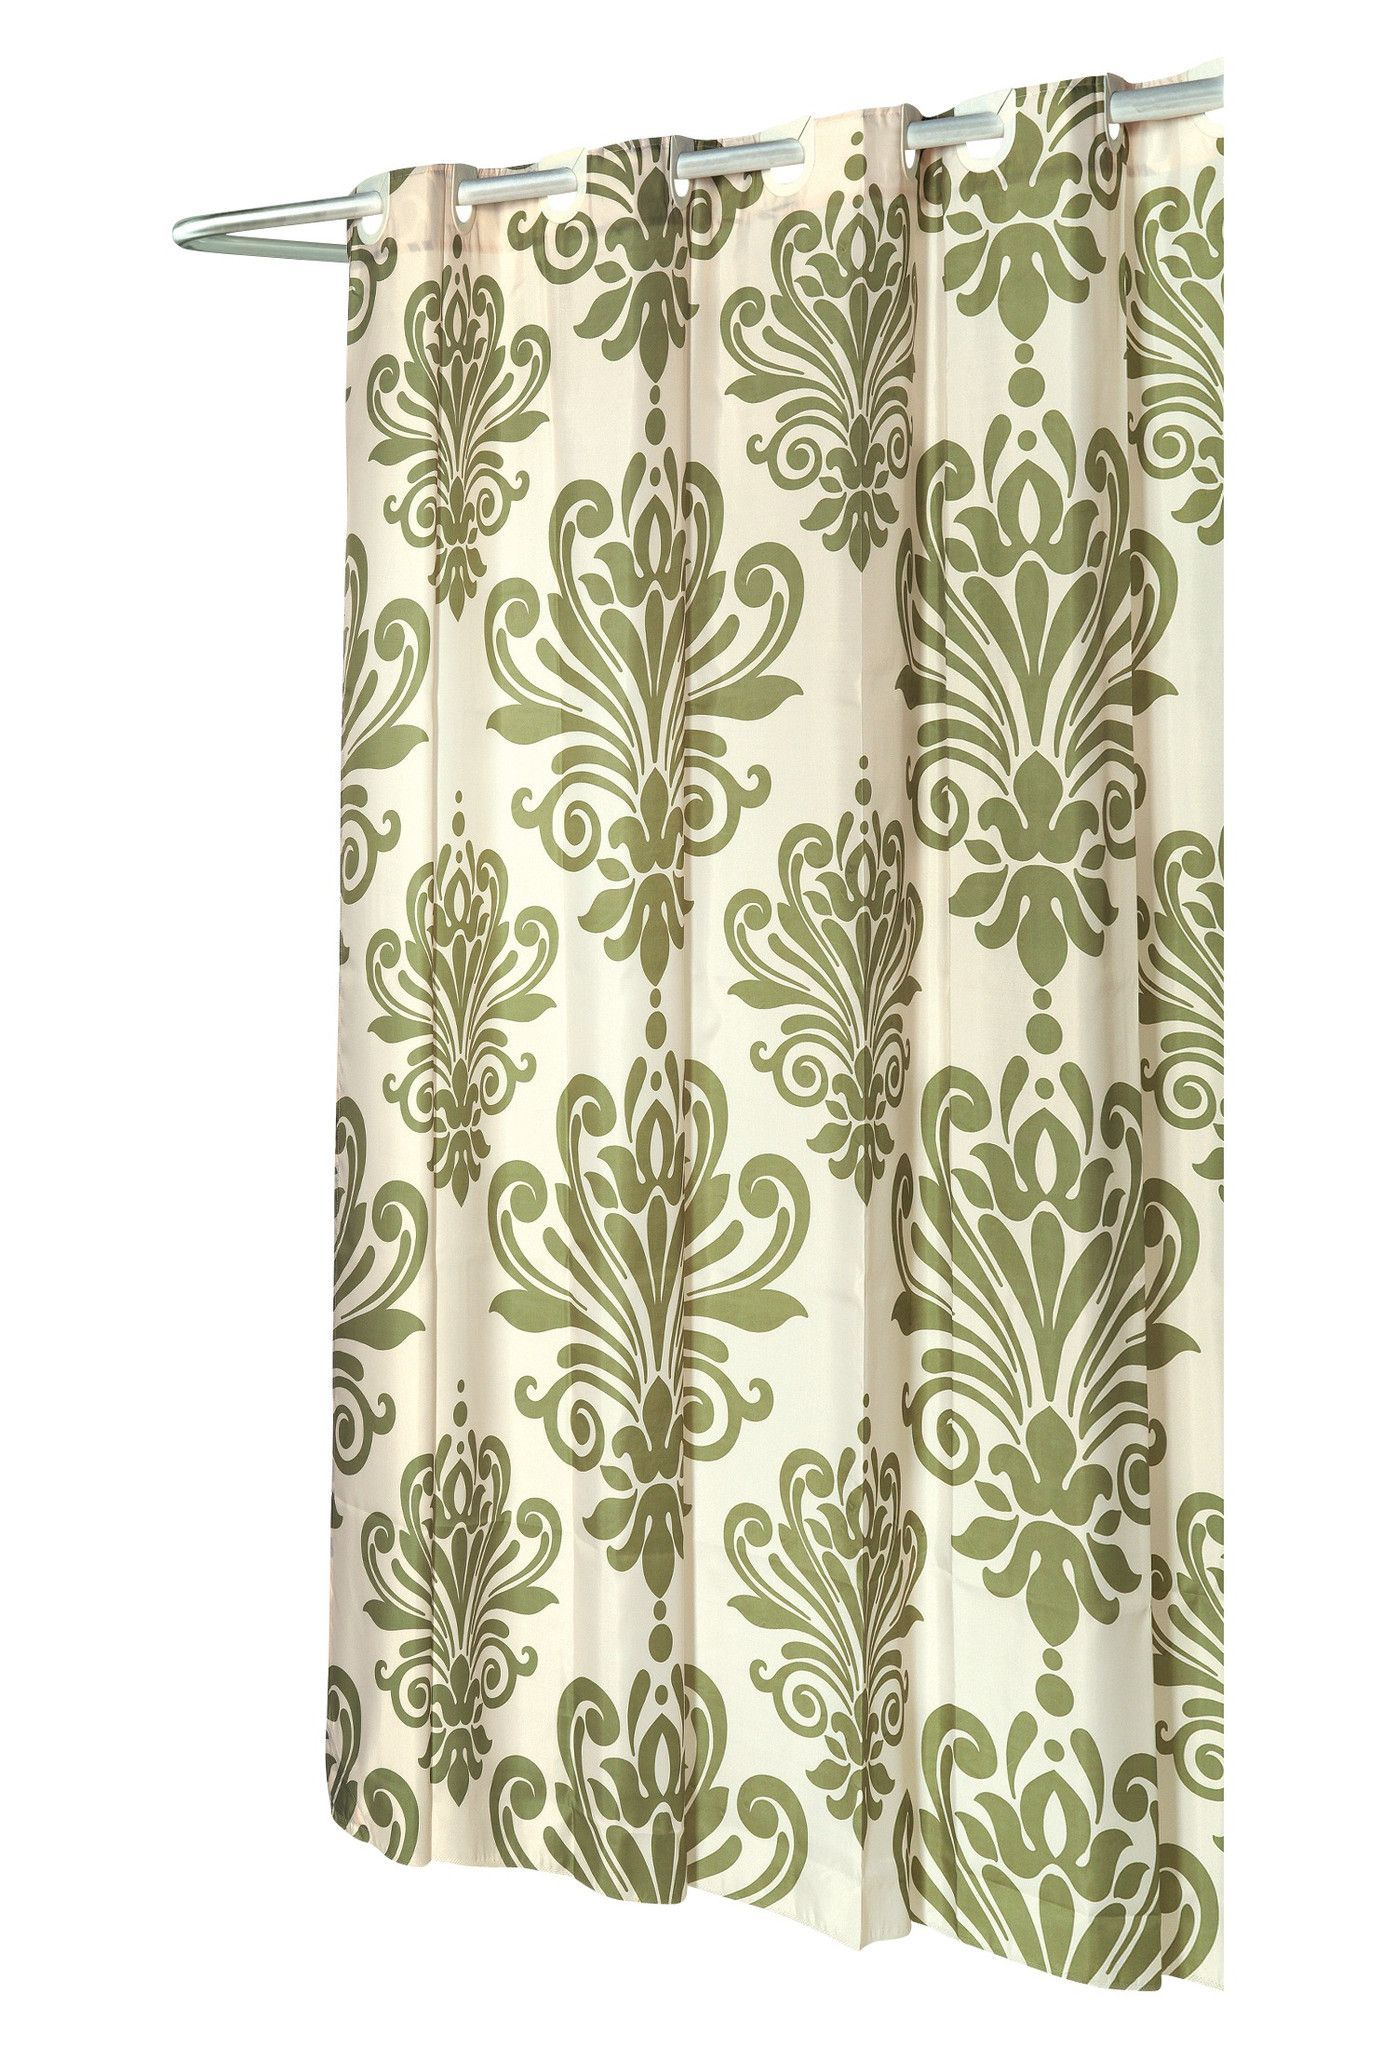 EZ On French Inspired Motif Fabric Shower Curtain Sage Ivory